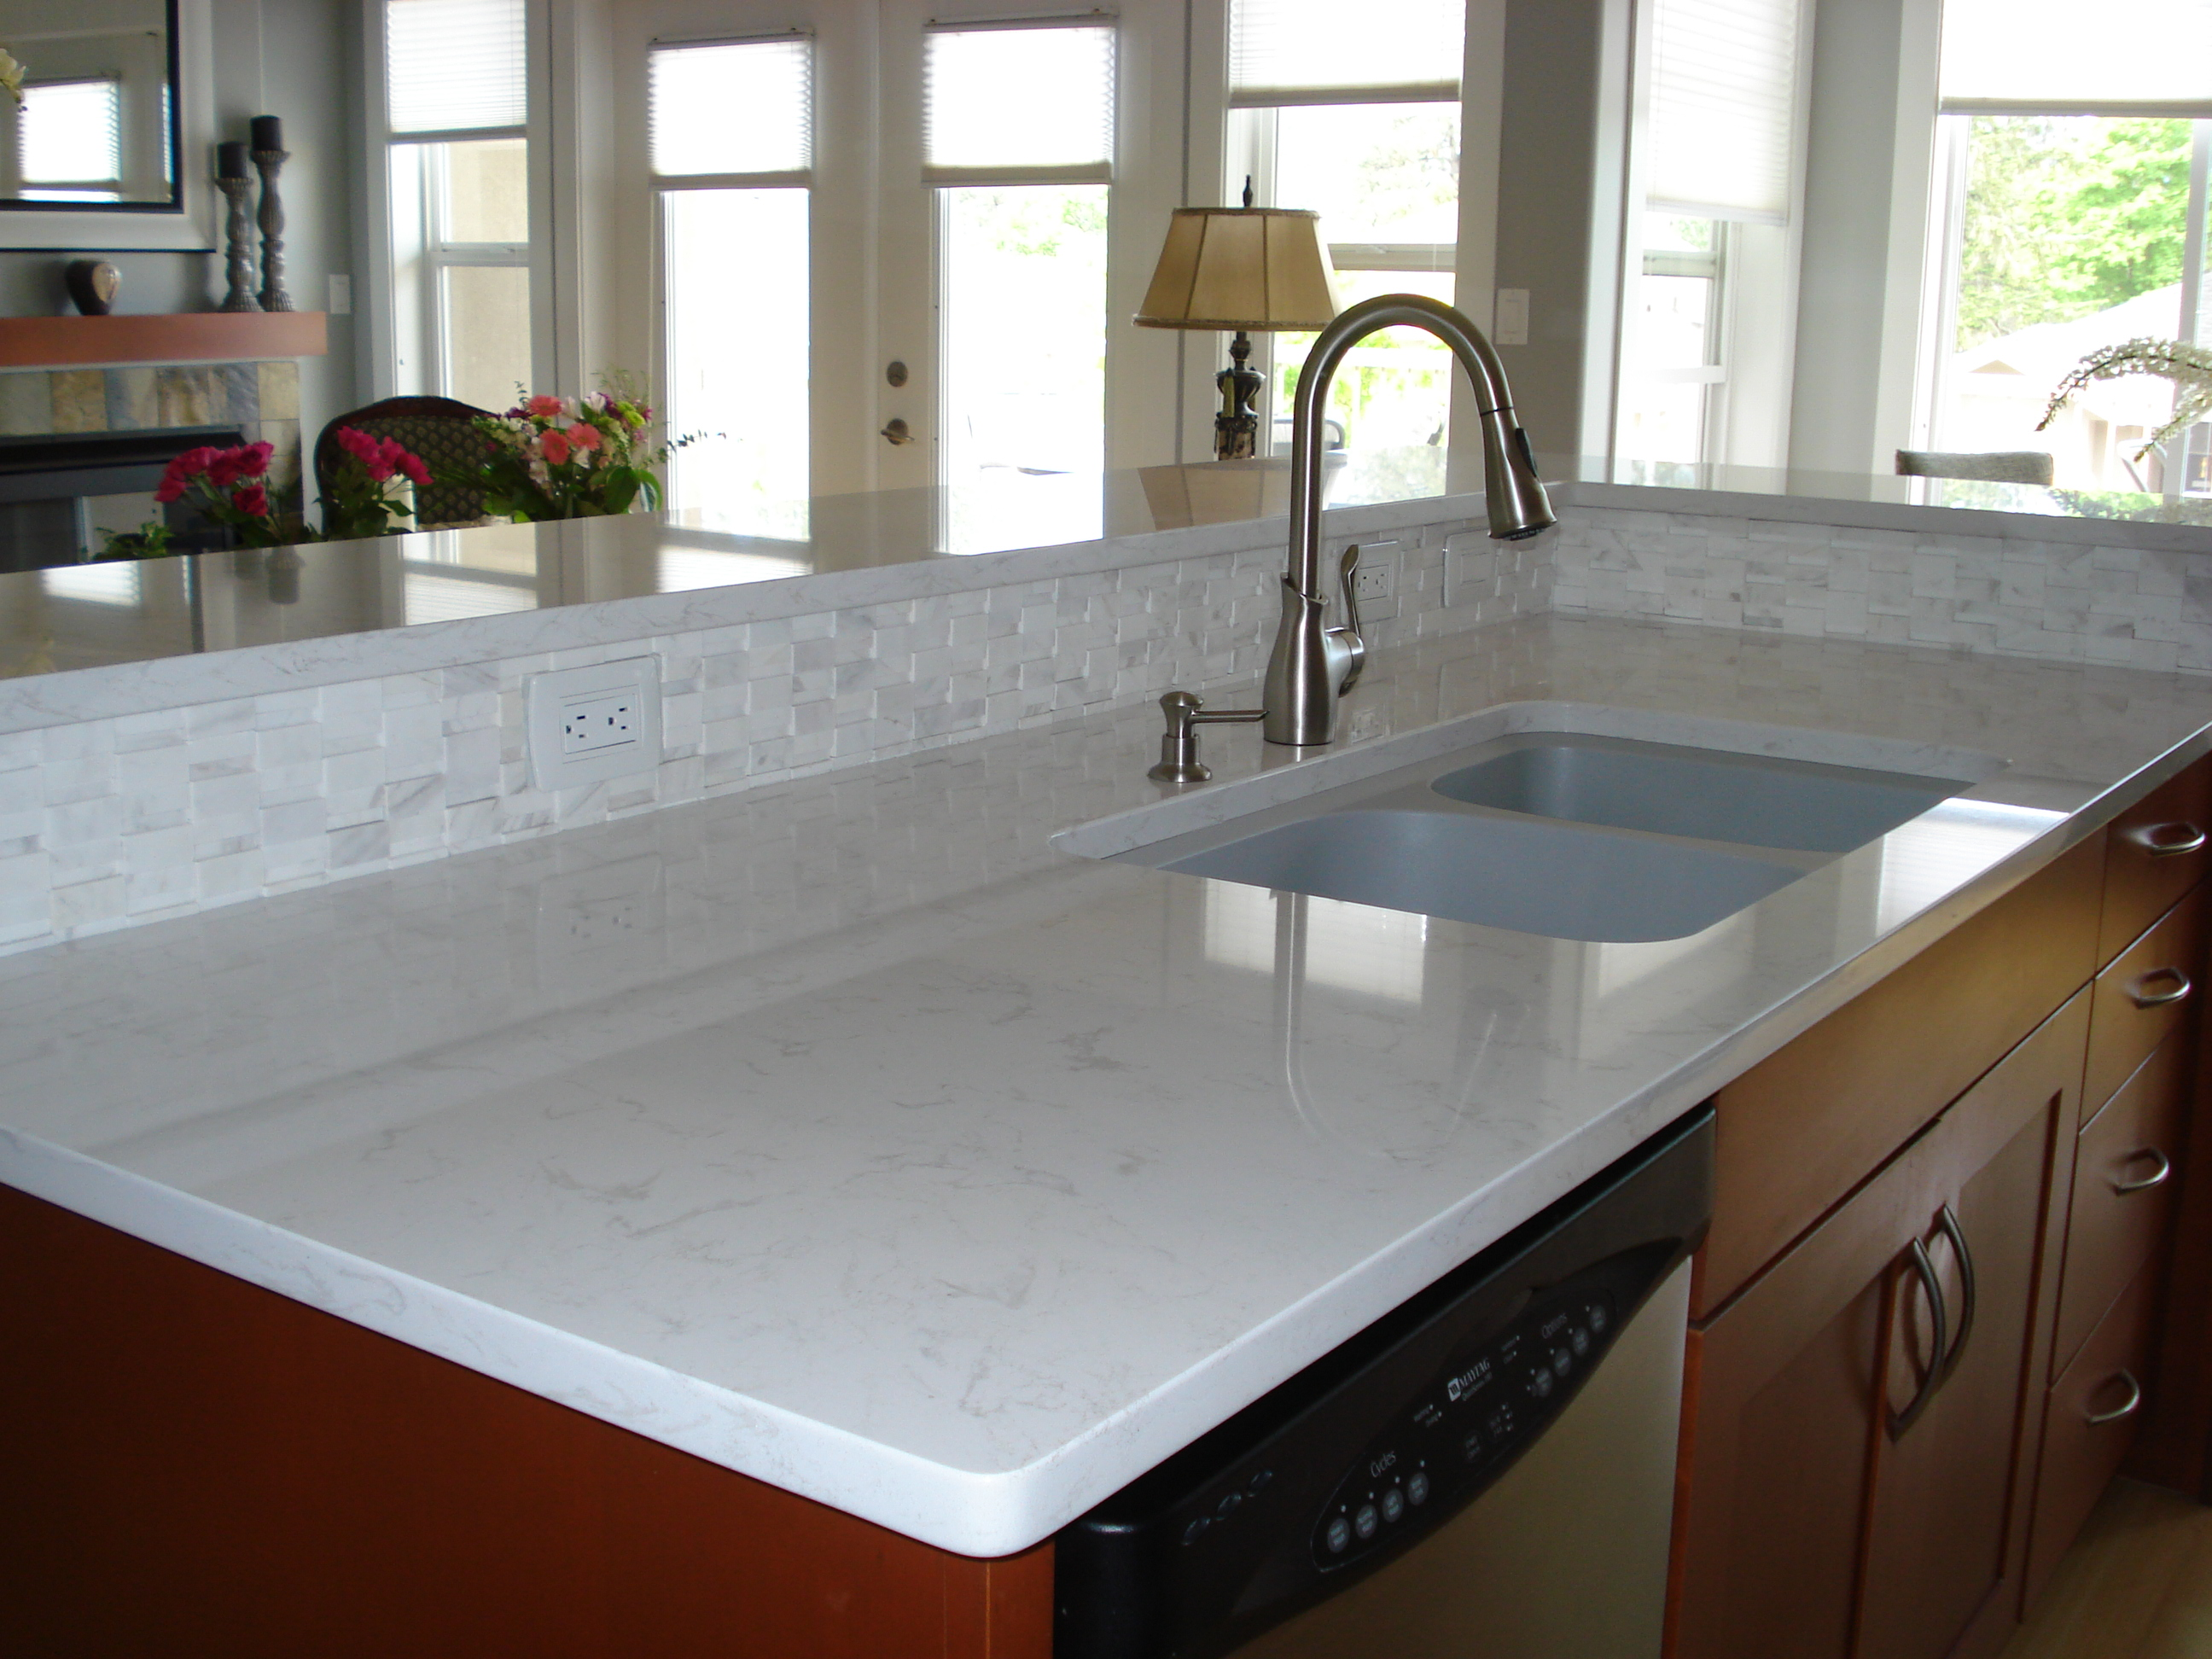 Inexpensive kitchen countertop to consider homesfeed for Porcelain countertops cost